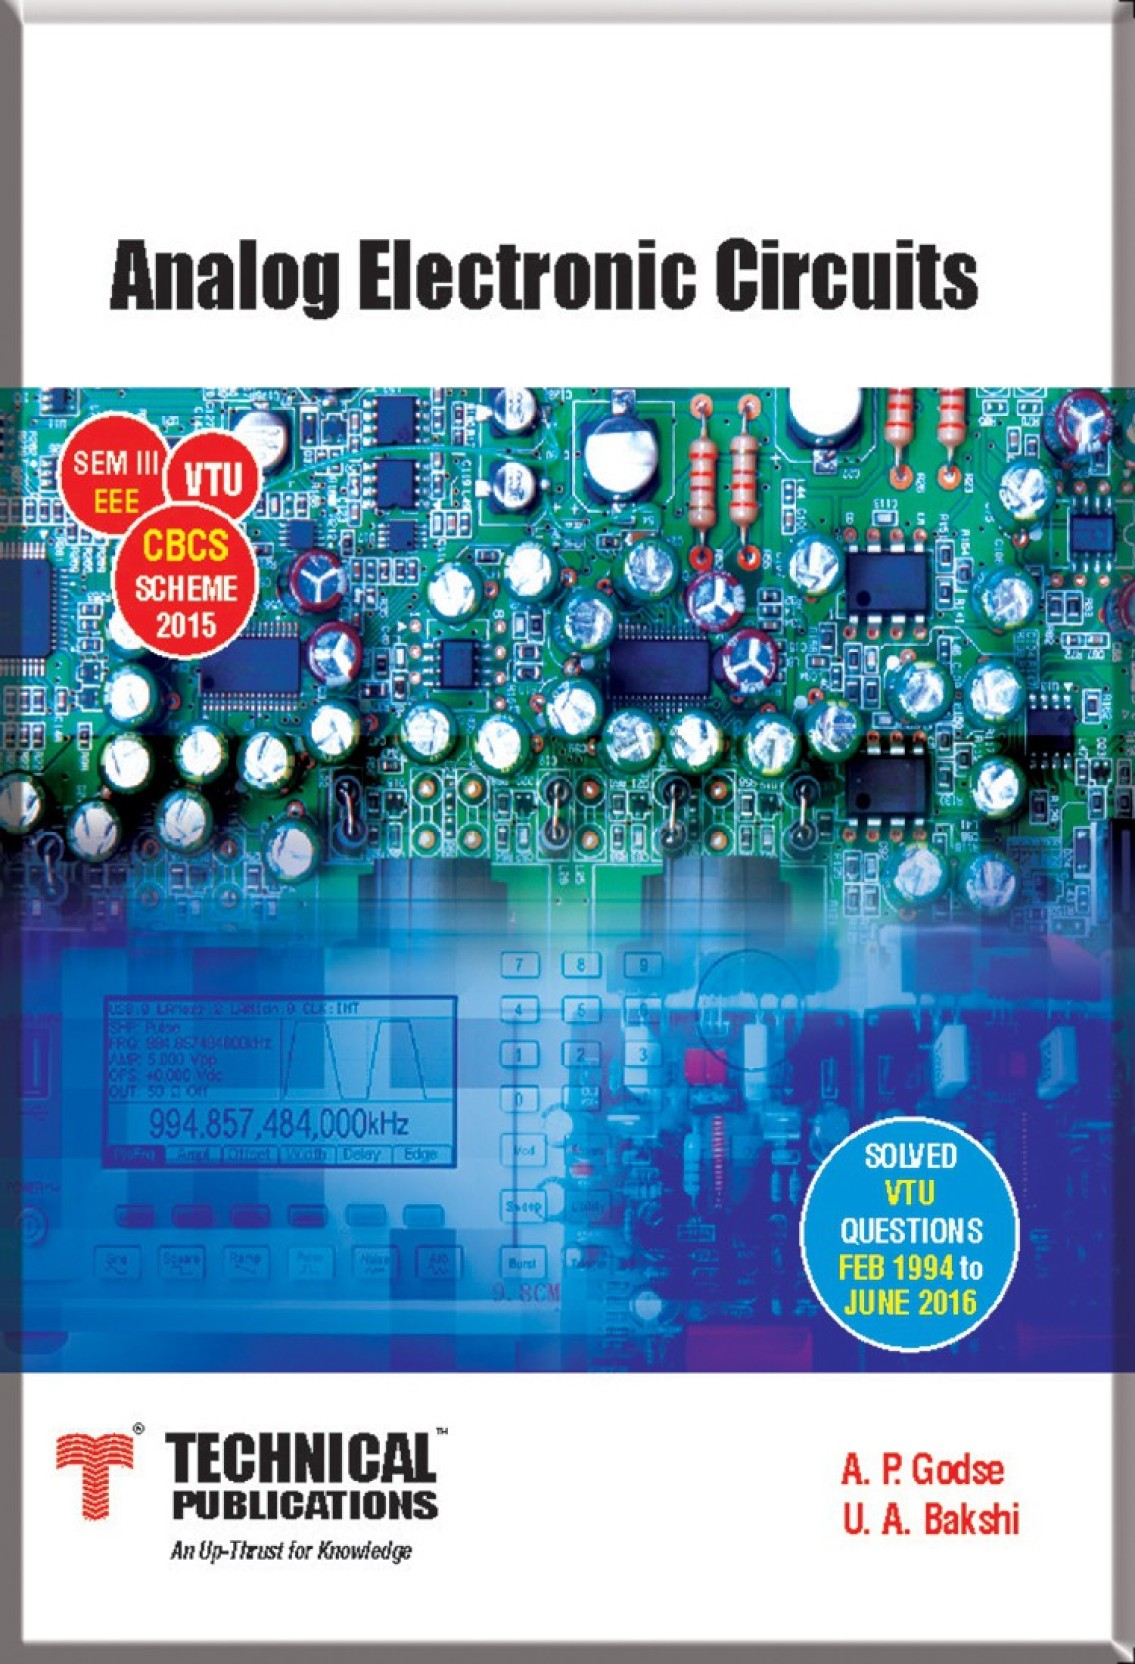 Analog Electronic Circuits For Vtu Sem Iii Eee Cbcs Scheme 2015 Textbook Pdf Share